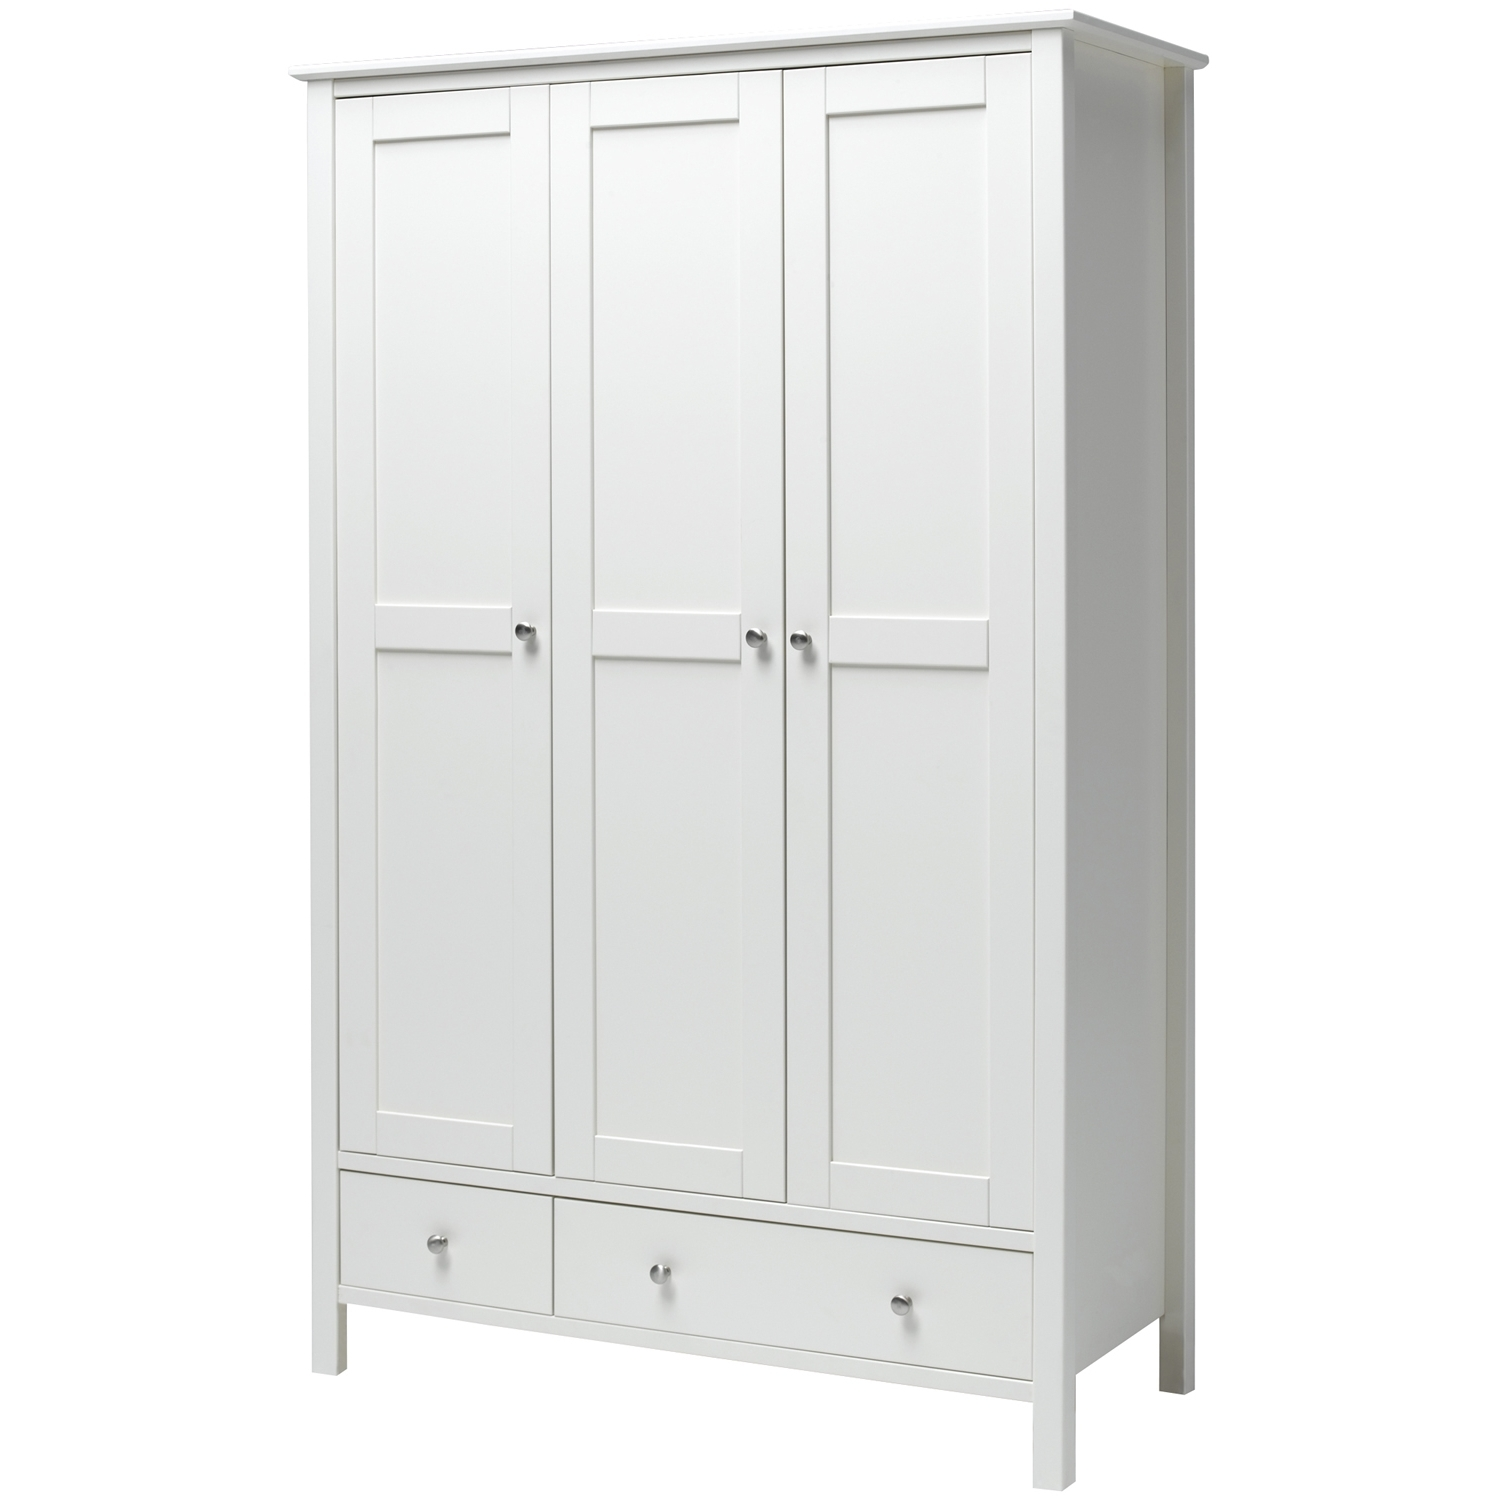 Well Known Stockholm 3 Door 2 Drawer Wardrobe White – Simply Furniture In 3 Door White Wardrobes (View 13 of 15)